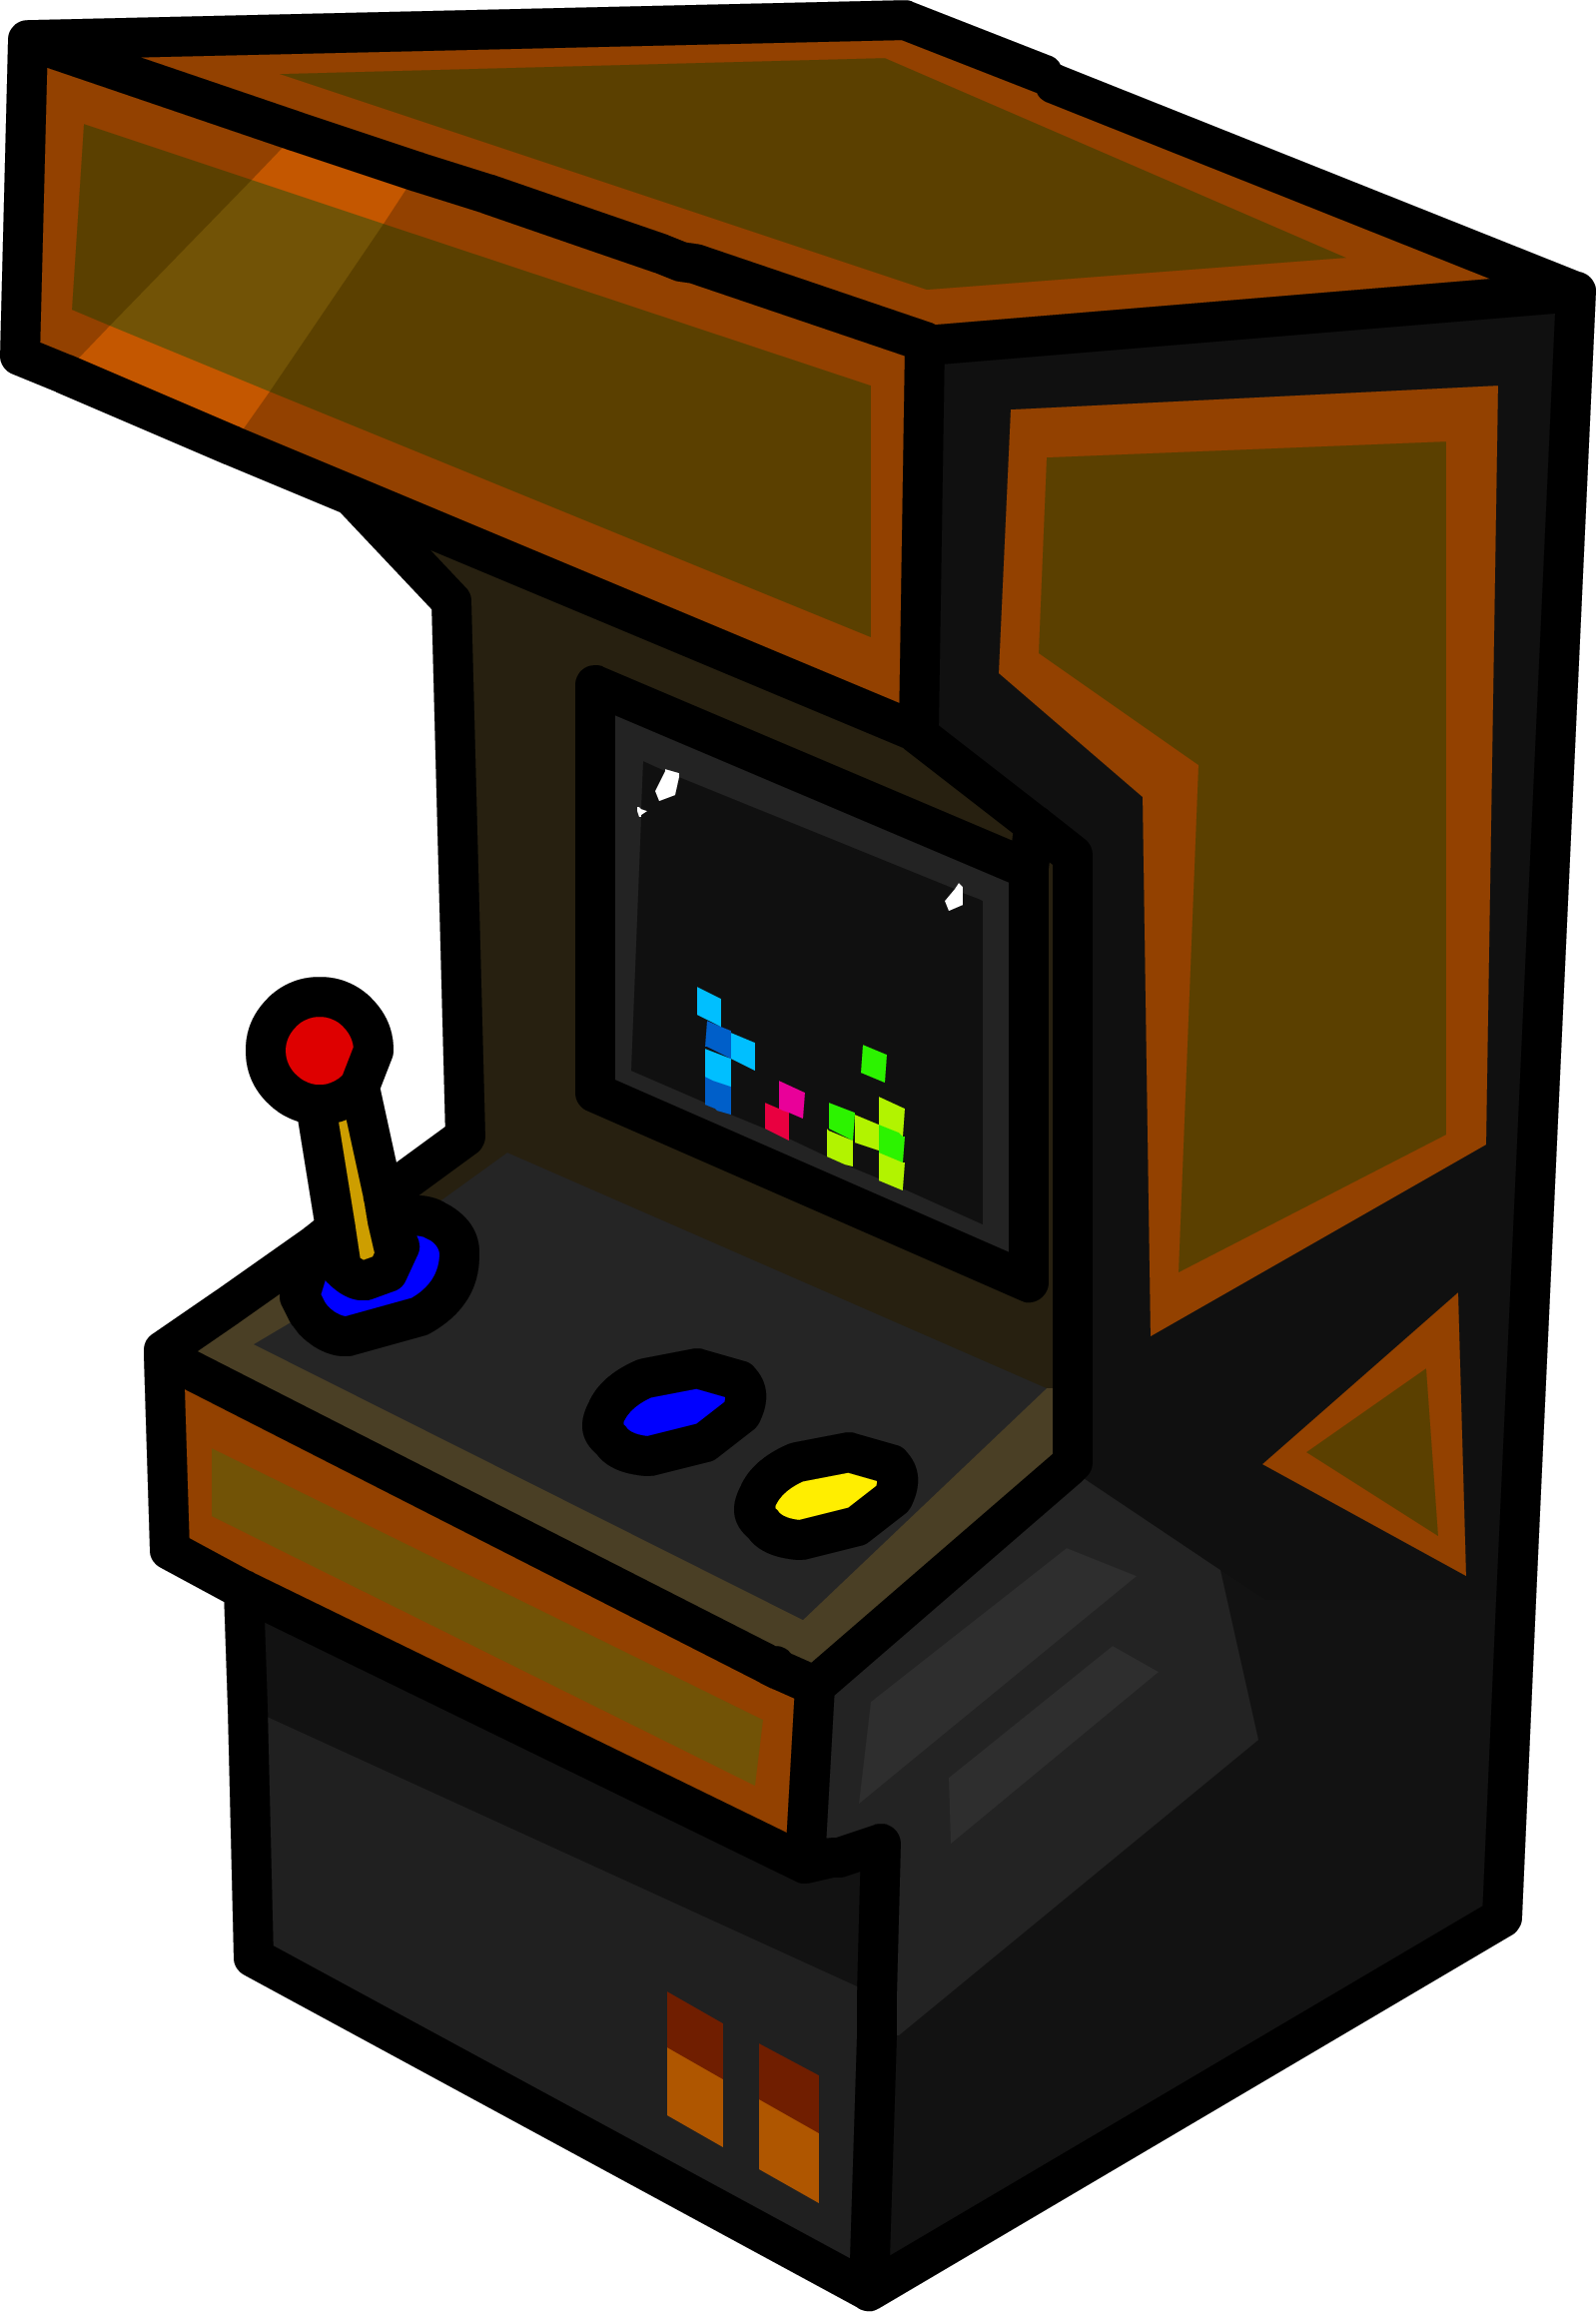 Image - Arcade Game.png | Club Penguin Wiki | FANDOM powered by Wikia